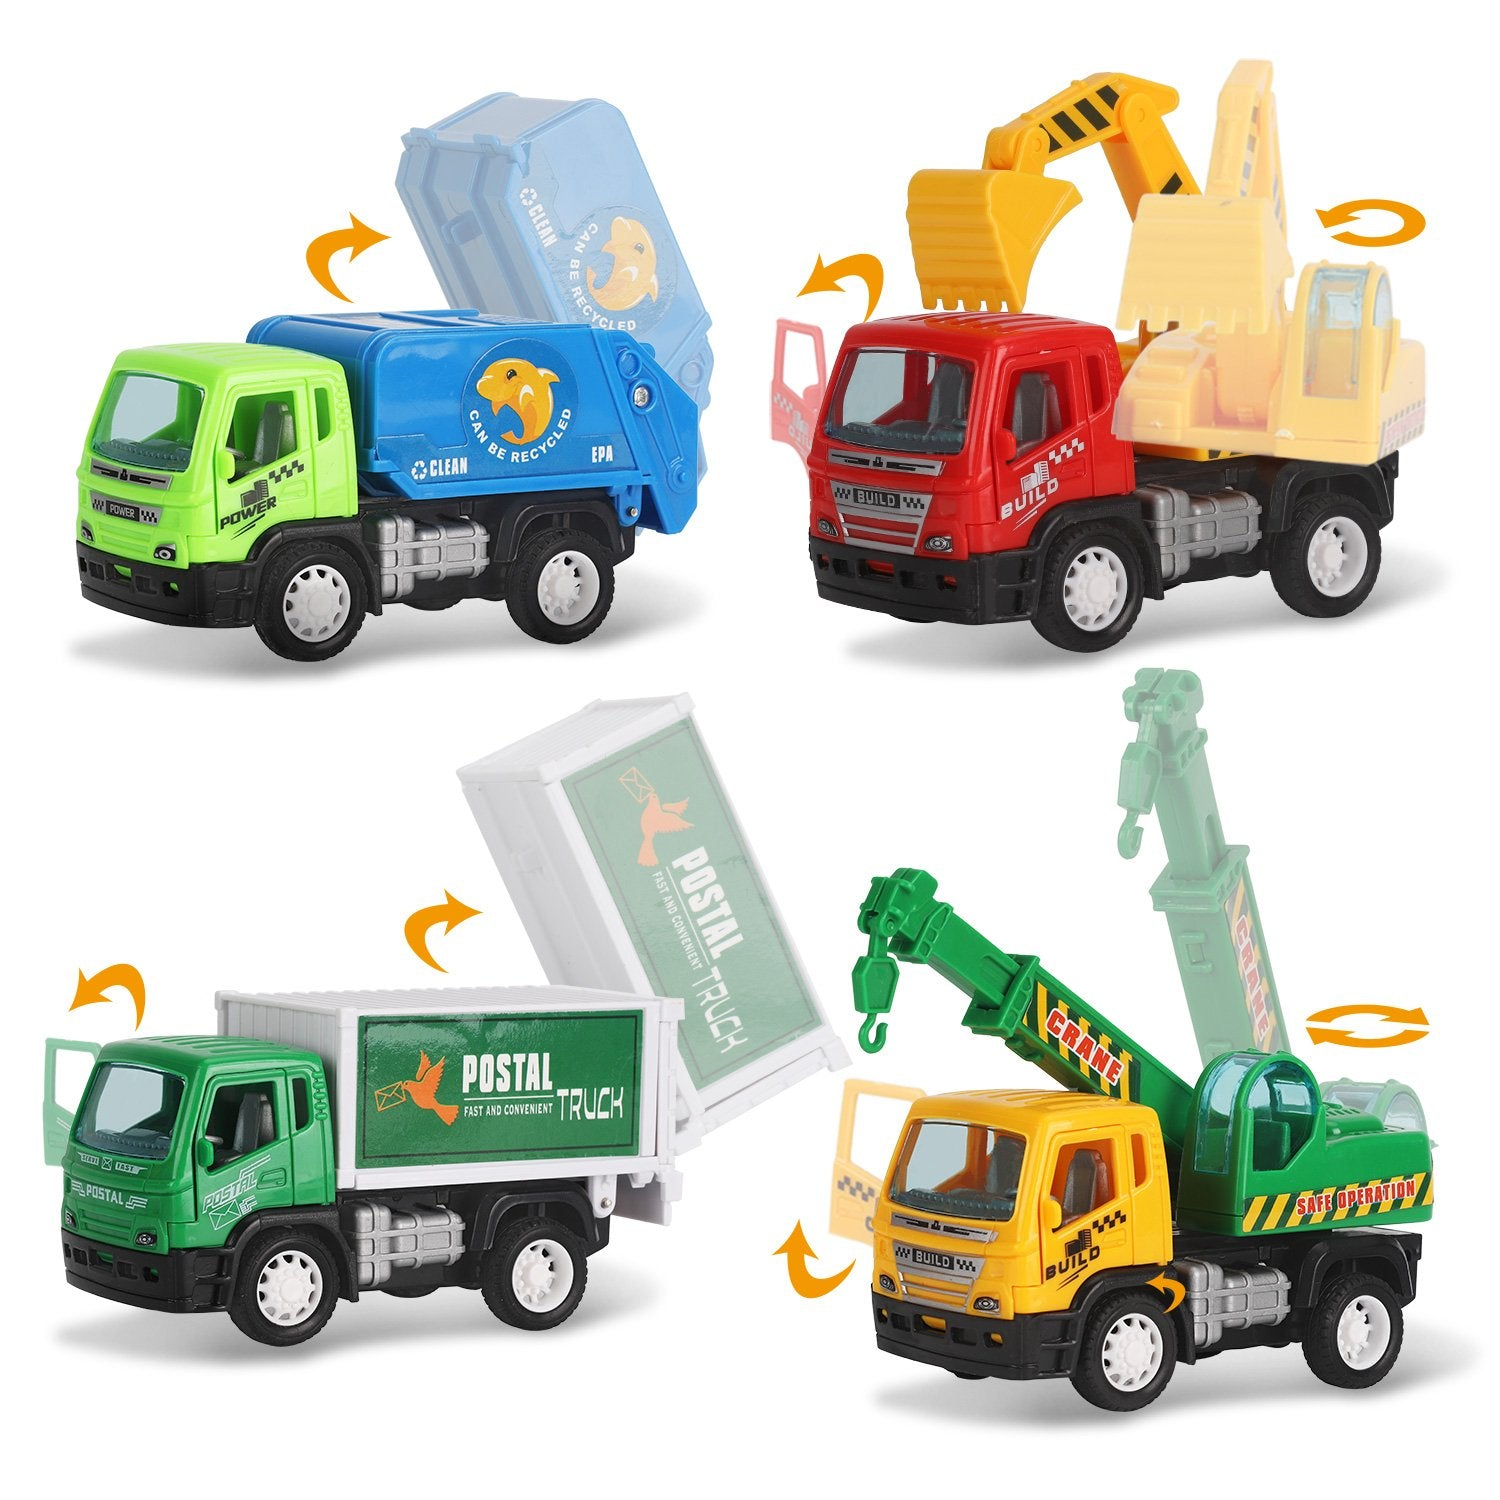 Set of 6 Pullback City Builder Construction Vehicles for Kids - Dump Truck, Cement Mixer, Garbage Truck, Excavator, Crane, Postal Truck